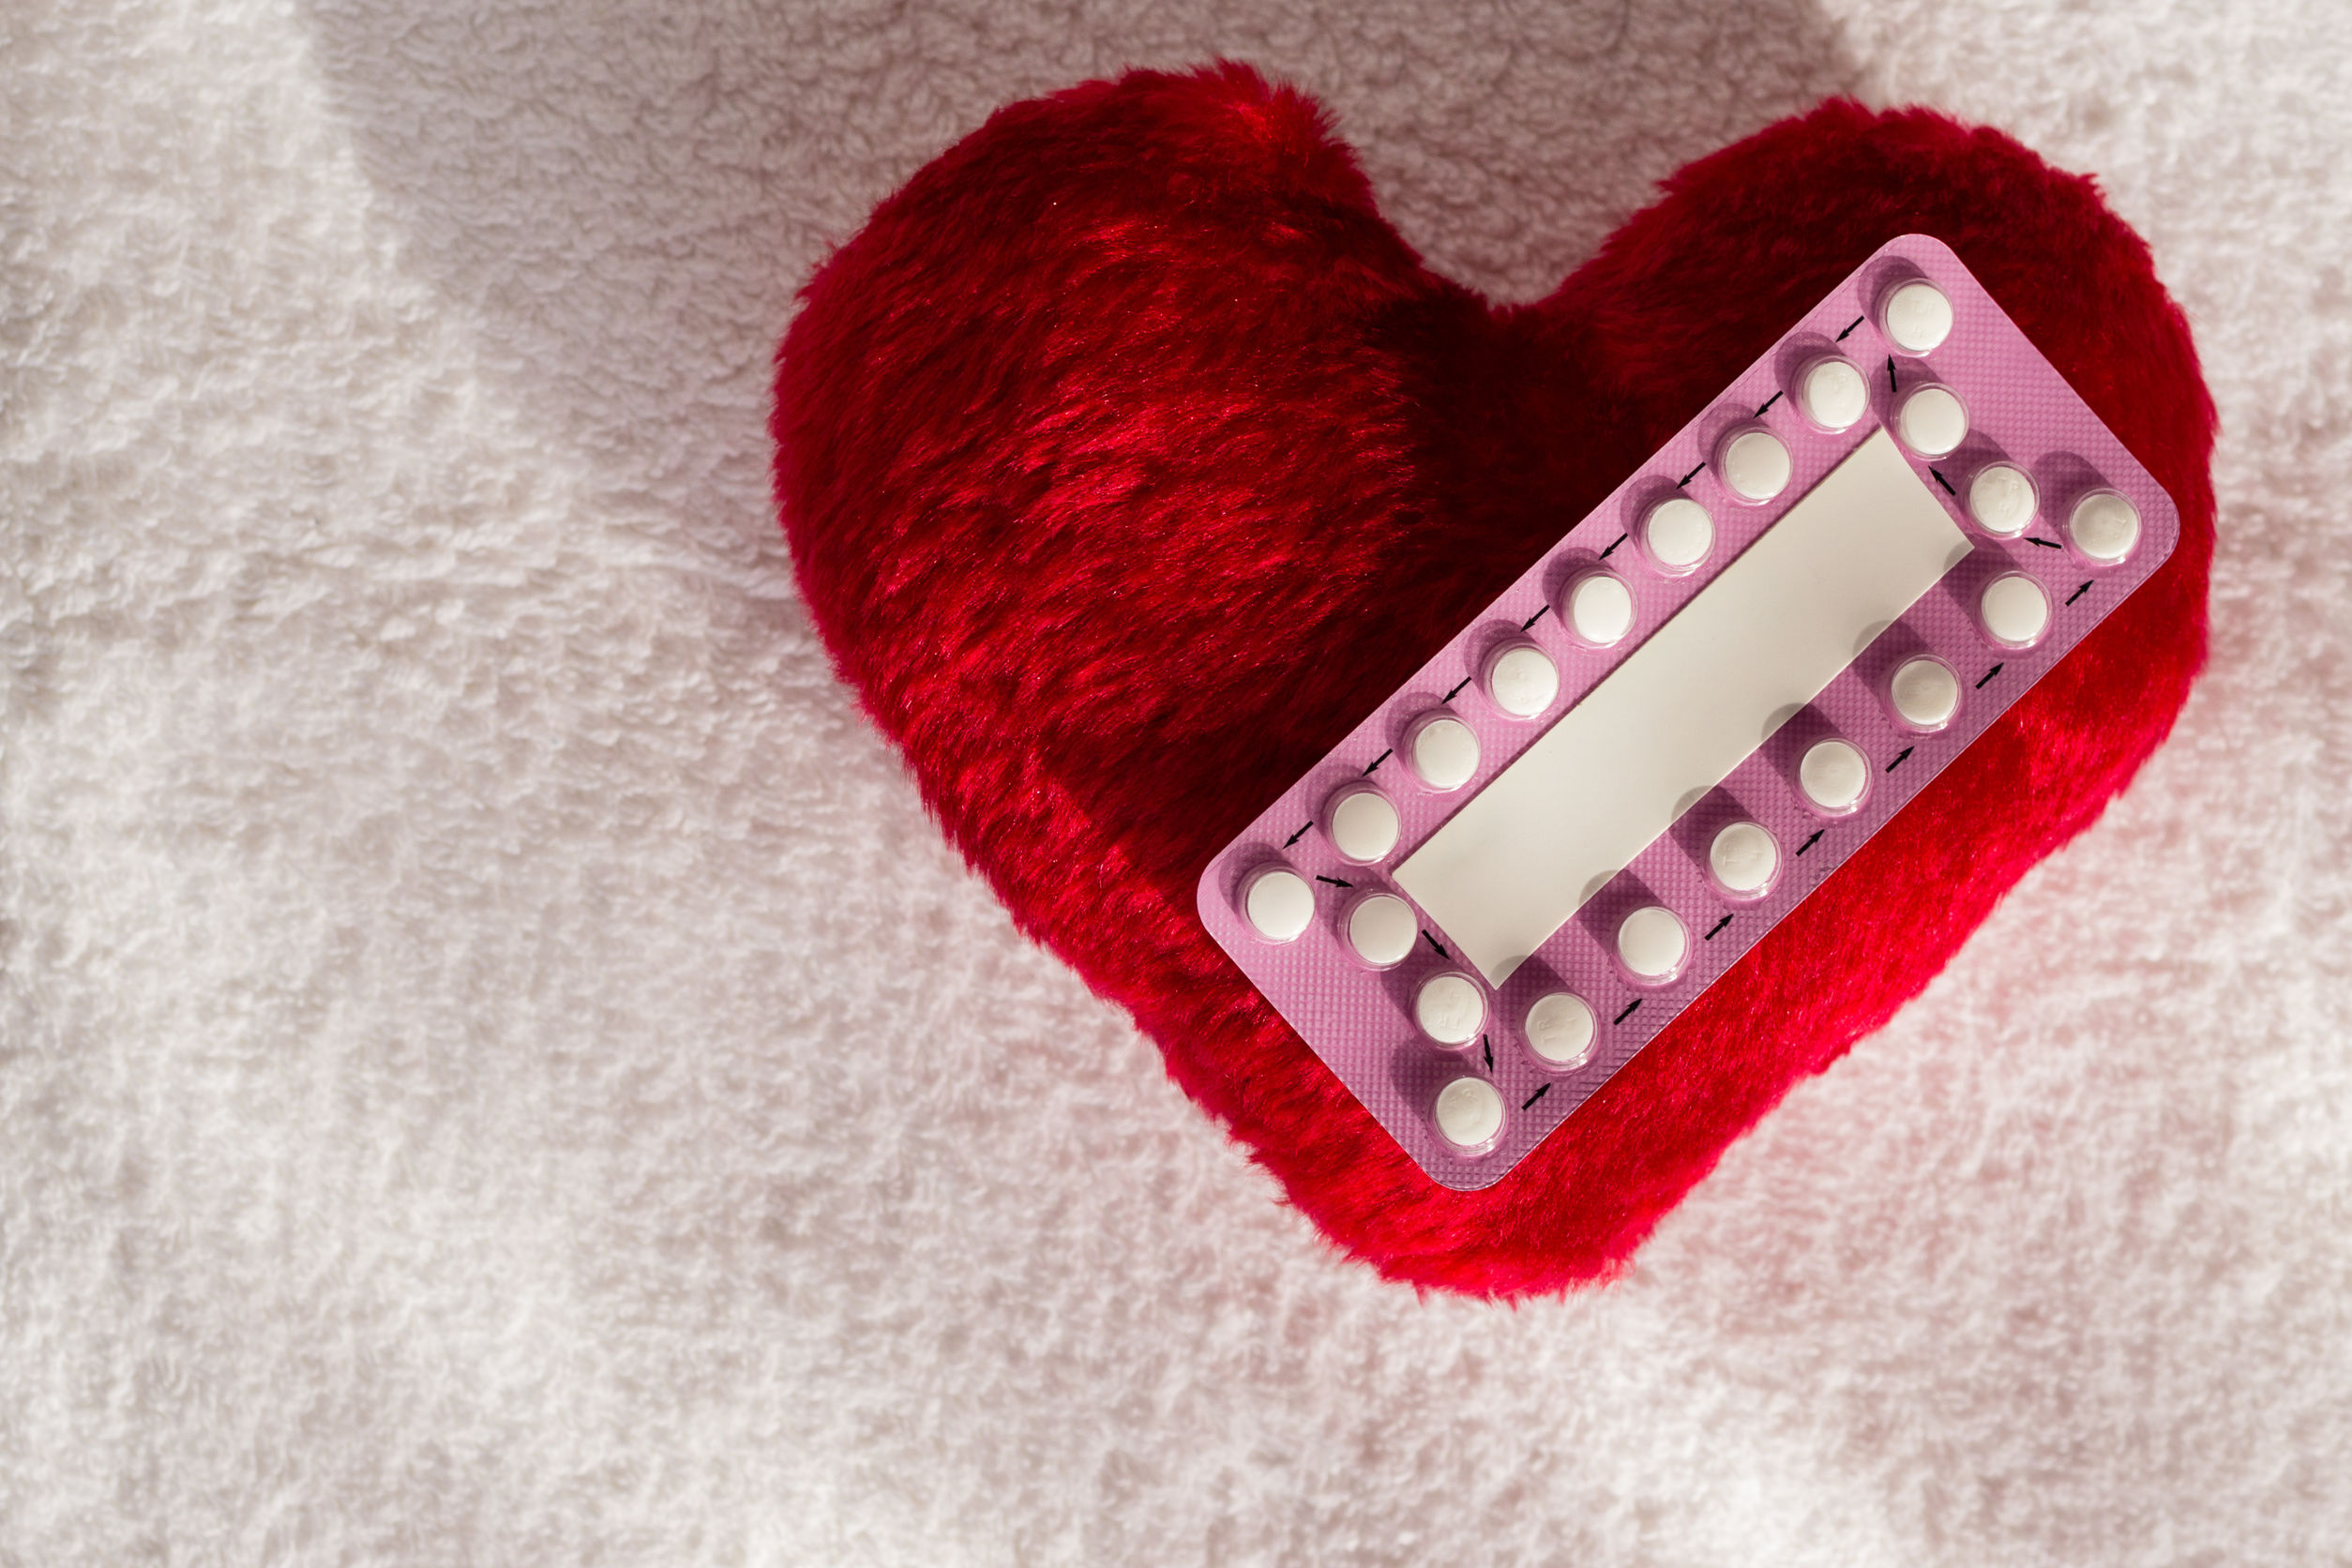 60676423 - medicine contraception love and birth control. oral contraceptive pills on red heart shaped little pillow